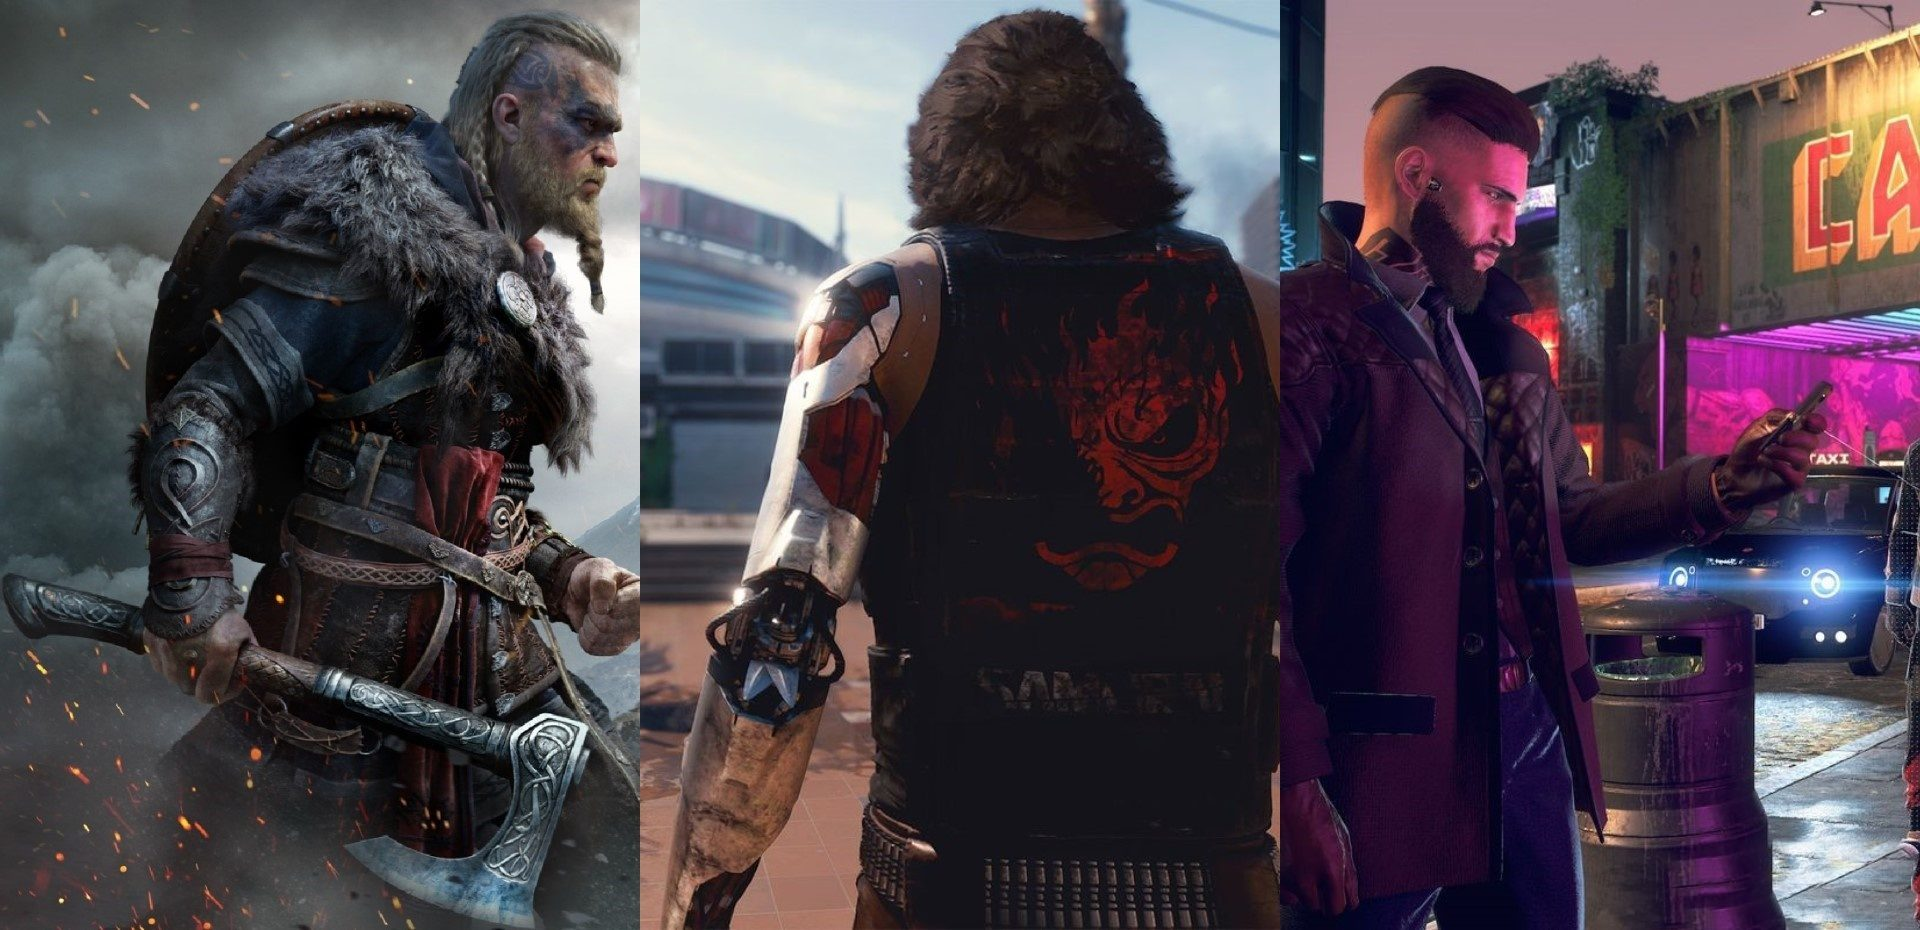 Top 10 PC Games Of 2021 For Gamers: The Best And The Upcoming Releases